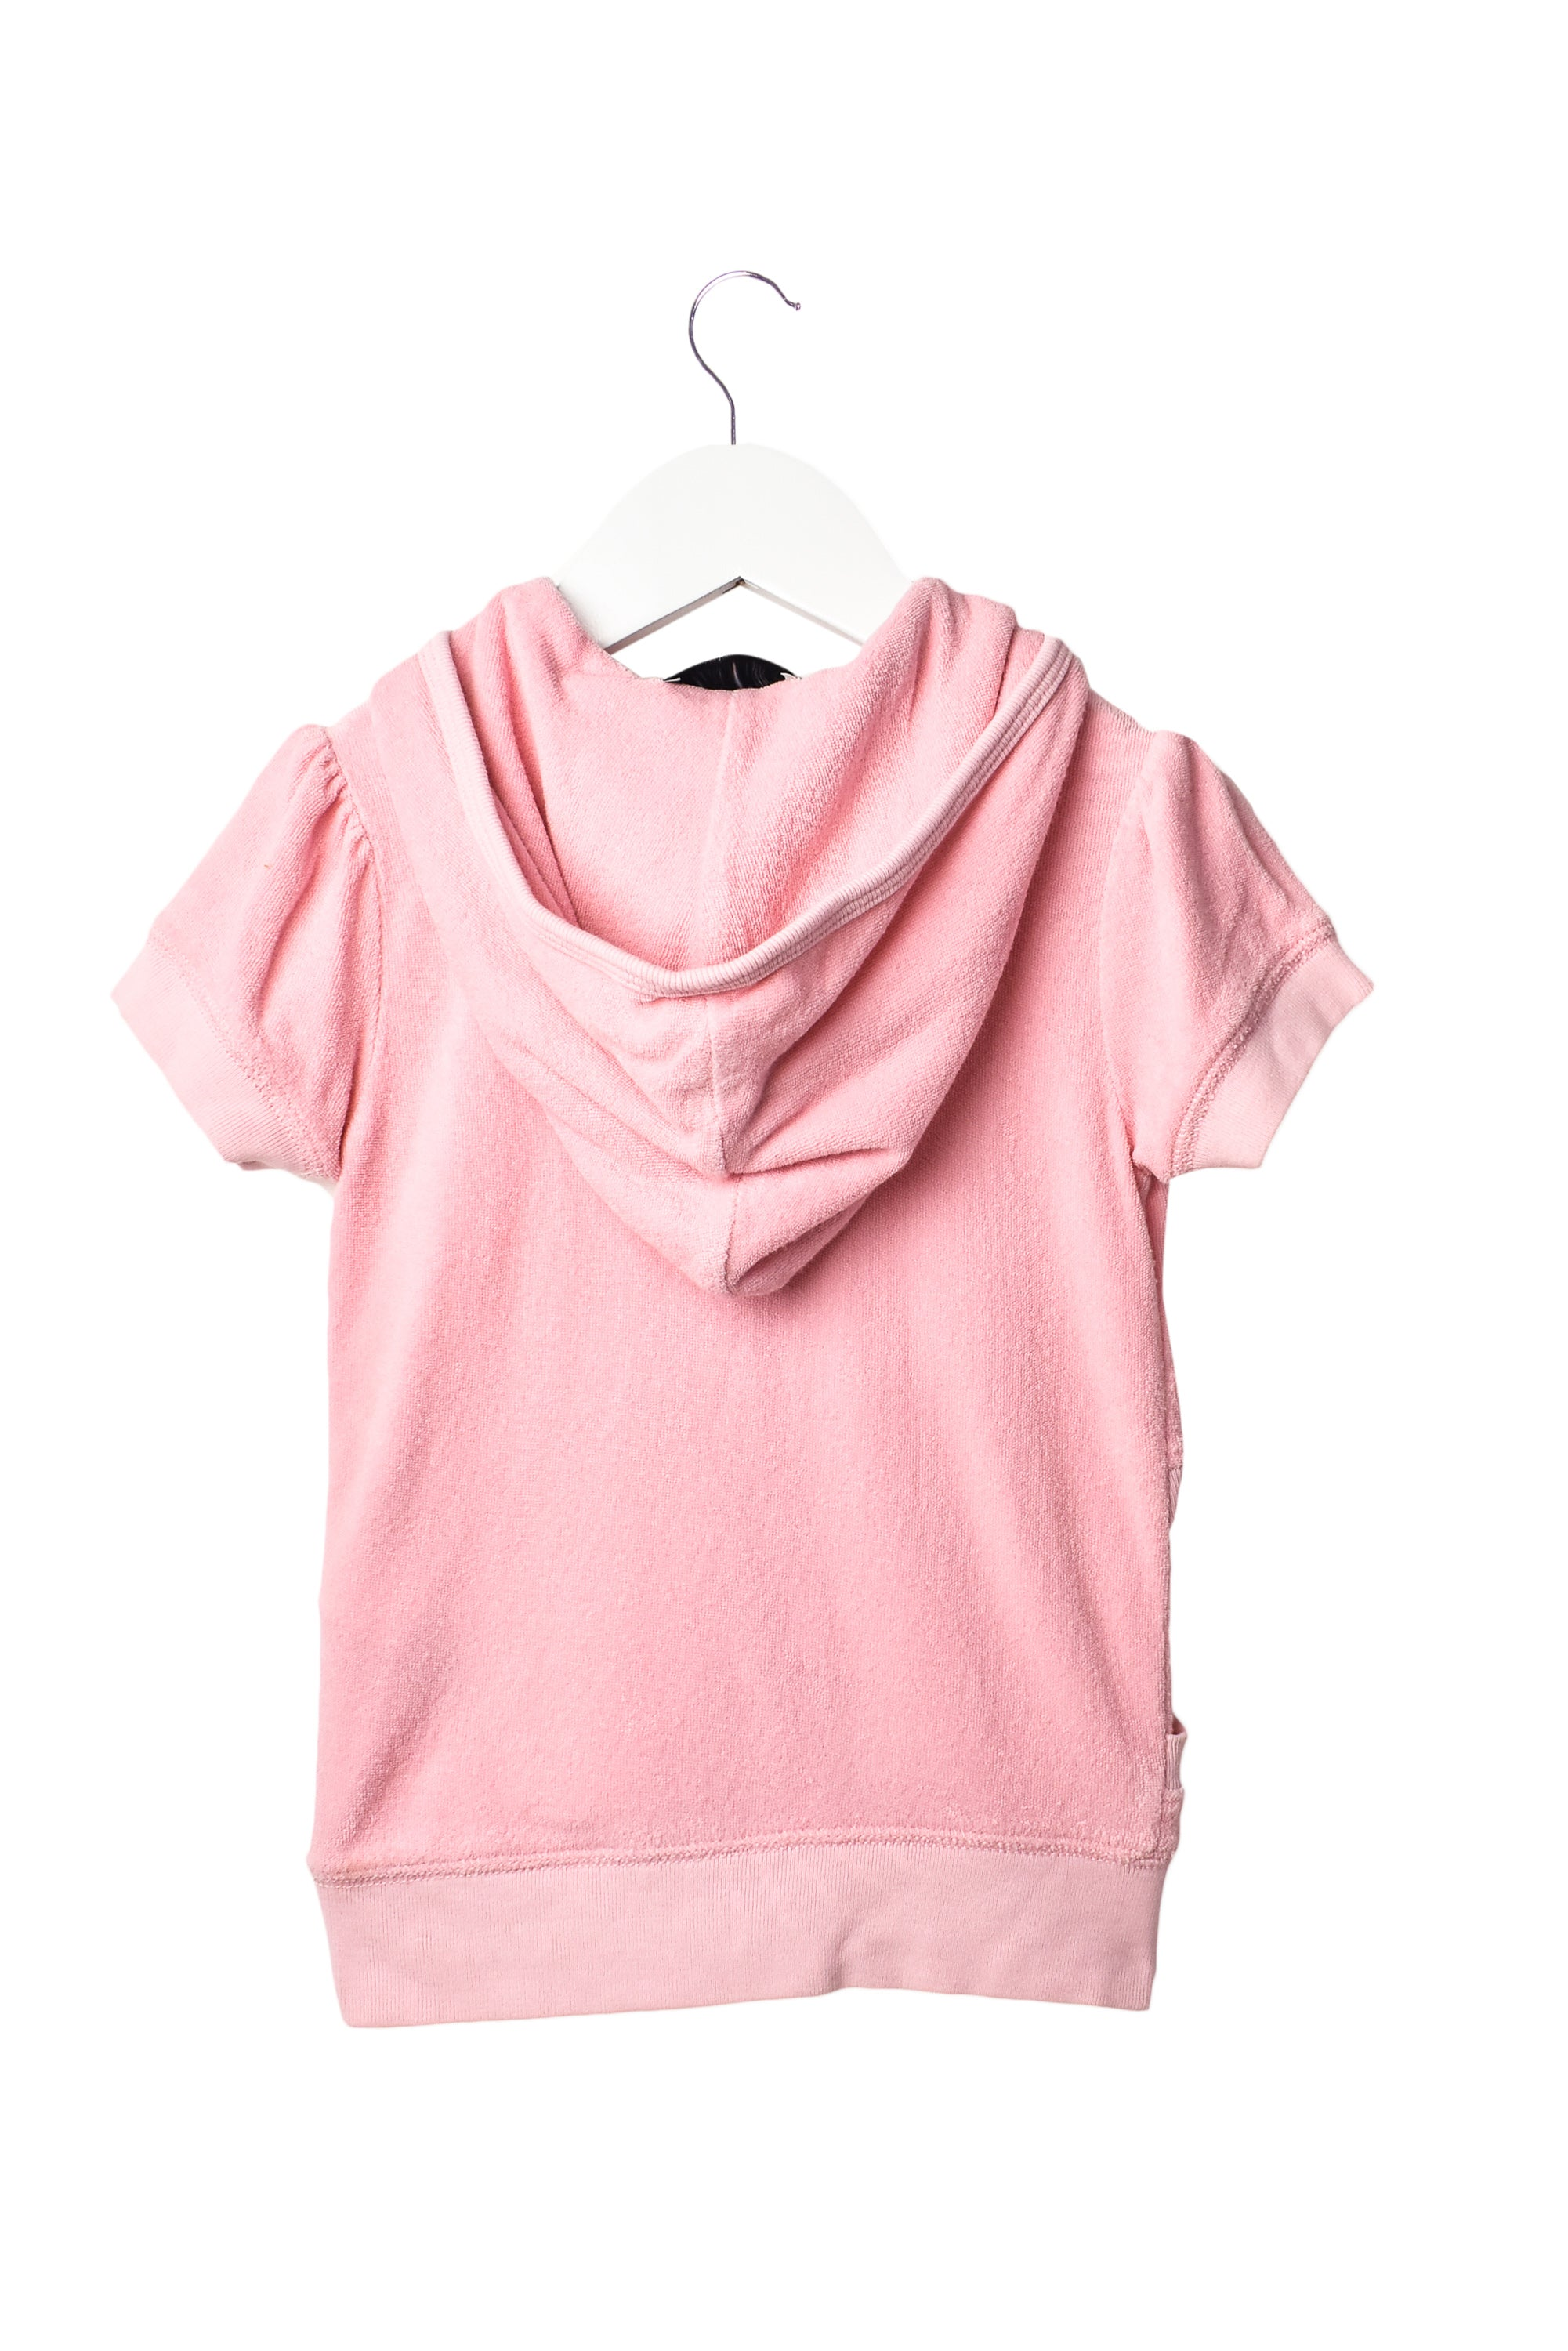 Juicy Couture at Retykle | Online Shopping Discount Baby & Kids Clothes Hong Kong